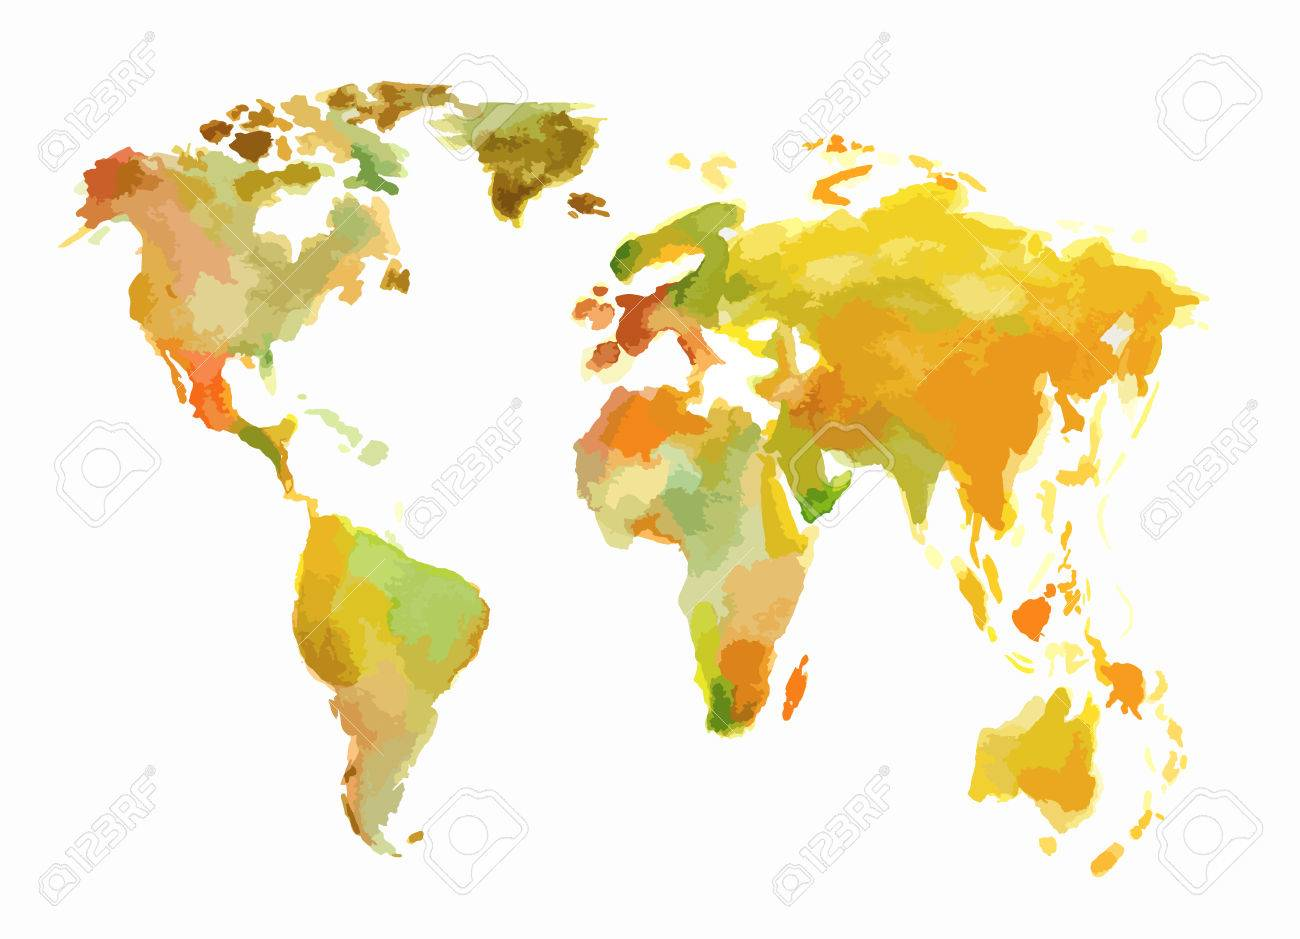 Watercolor world map beautiful map with lands and islands vector watercolor world map beautiful map with lands and islands watercolor illustration for decoration gumiabroncs Image collections